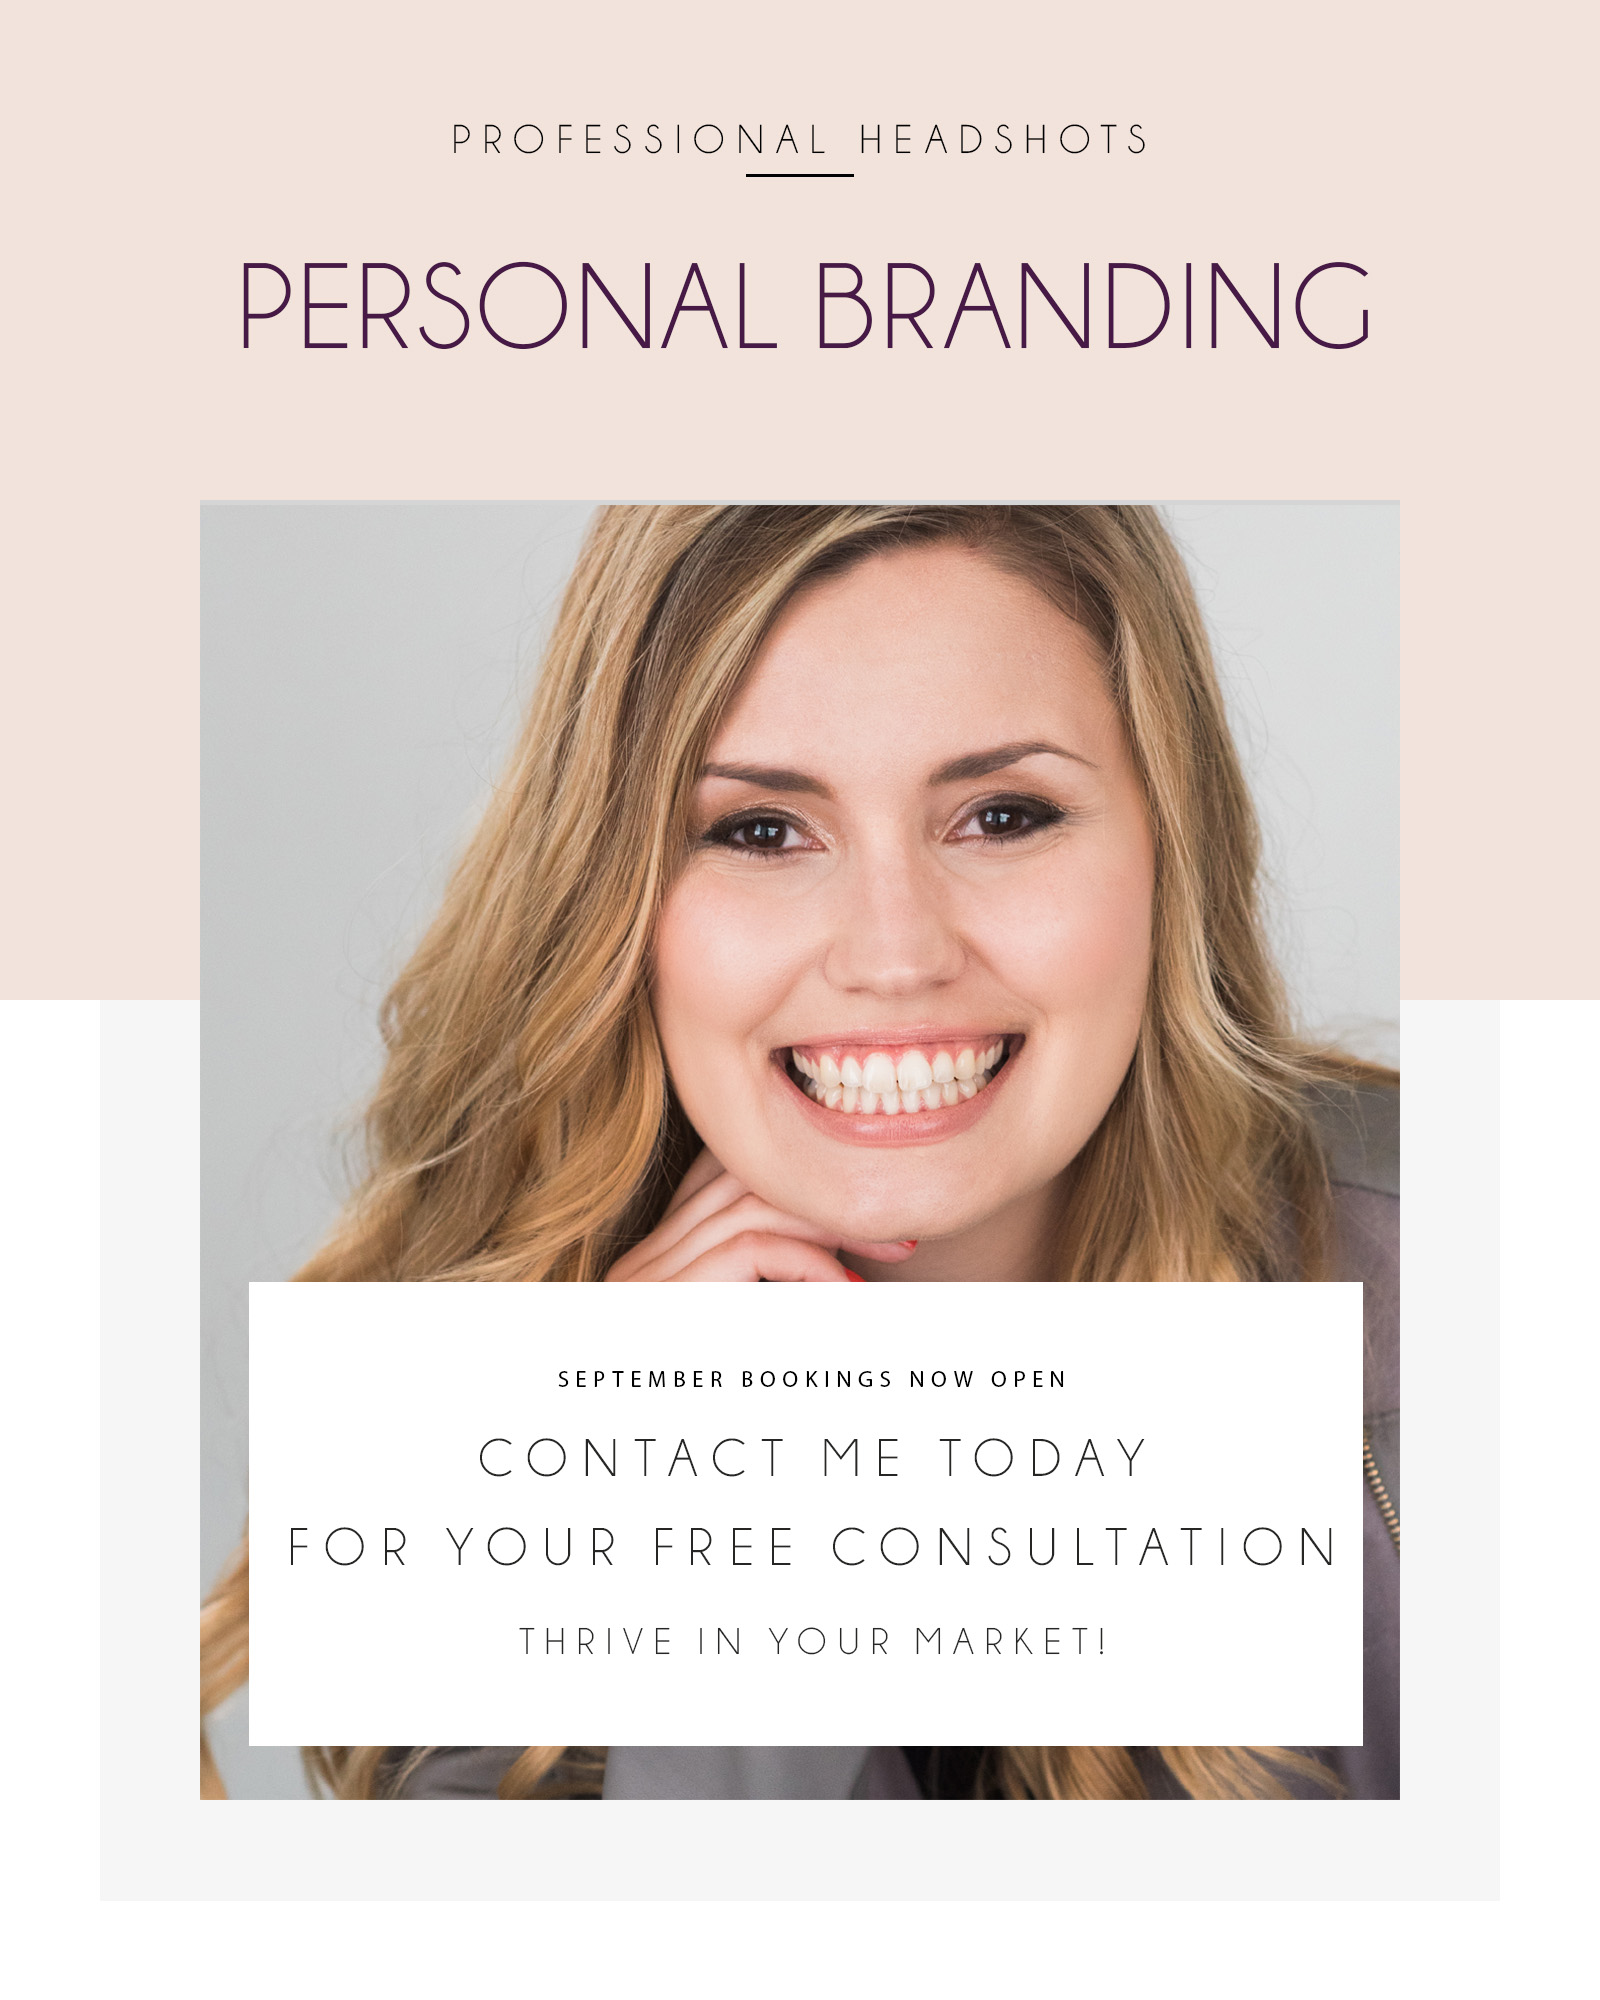 Personal Branding and Headshot photography in Buffalo Image